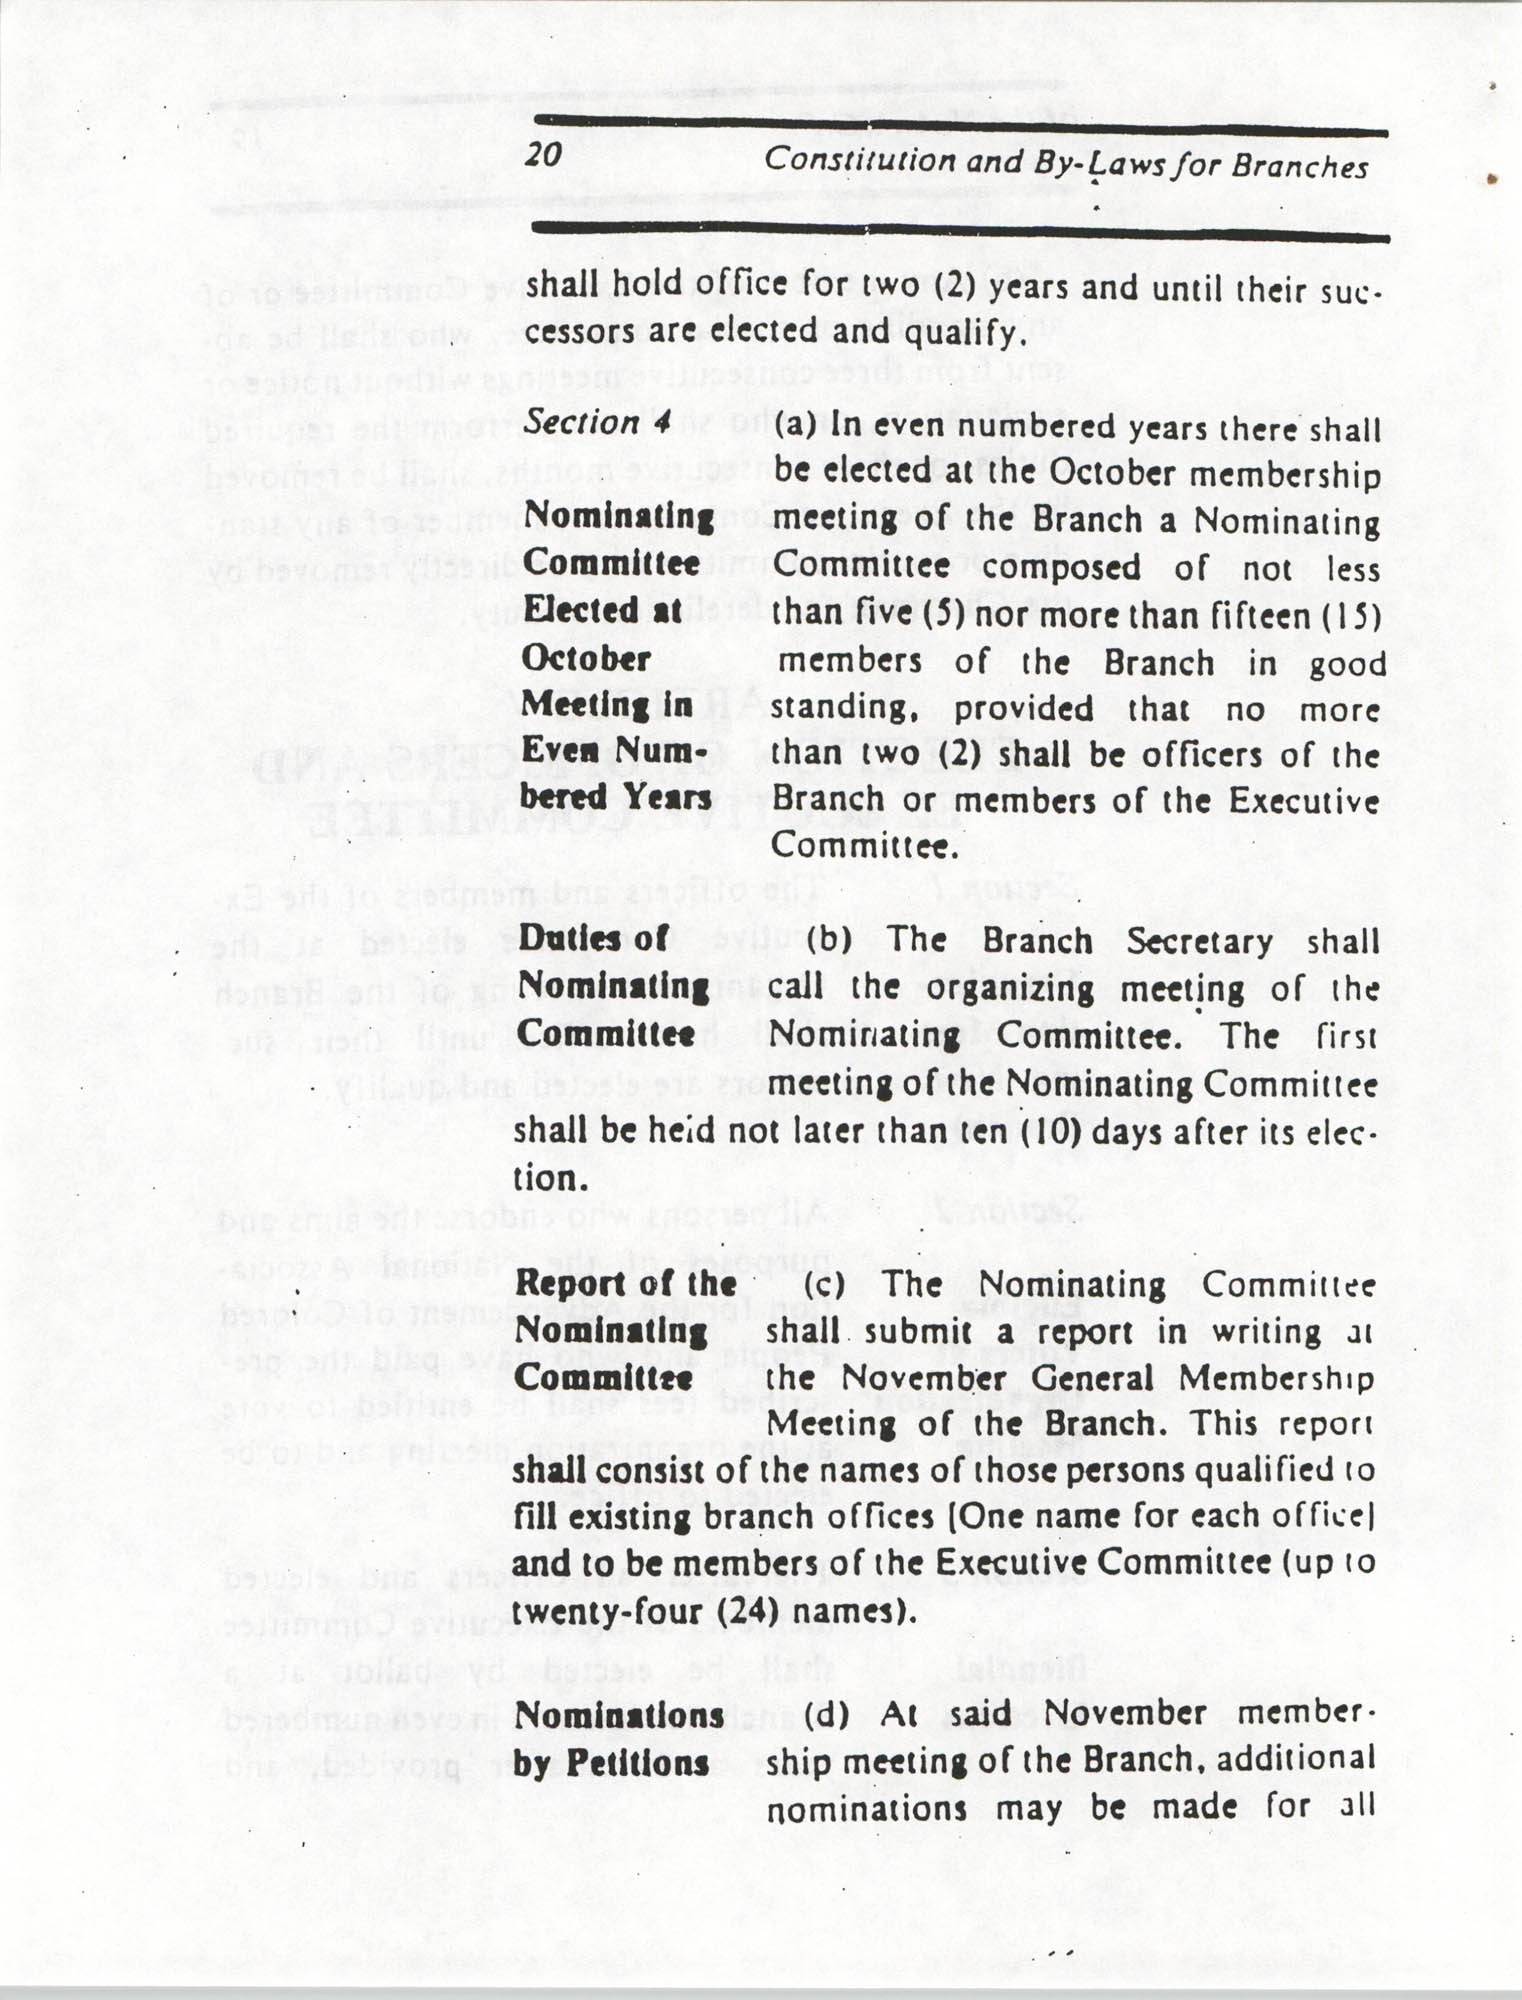 Constitution and By-Laws for Branches of the NAACP, March 1992, Page 20